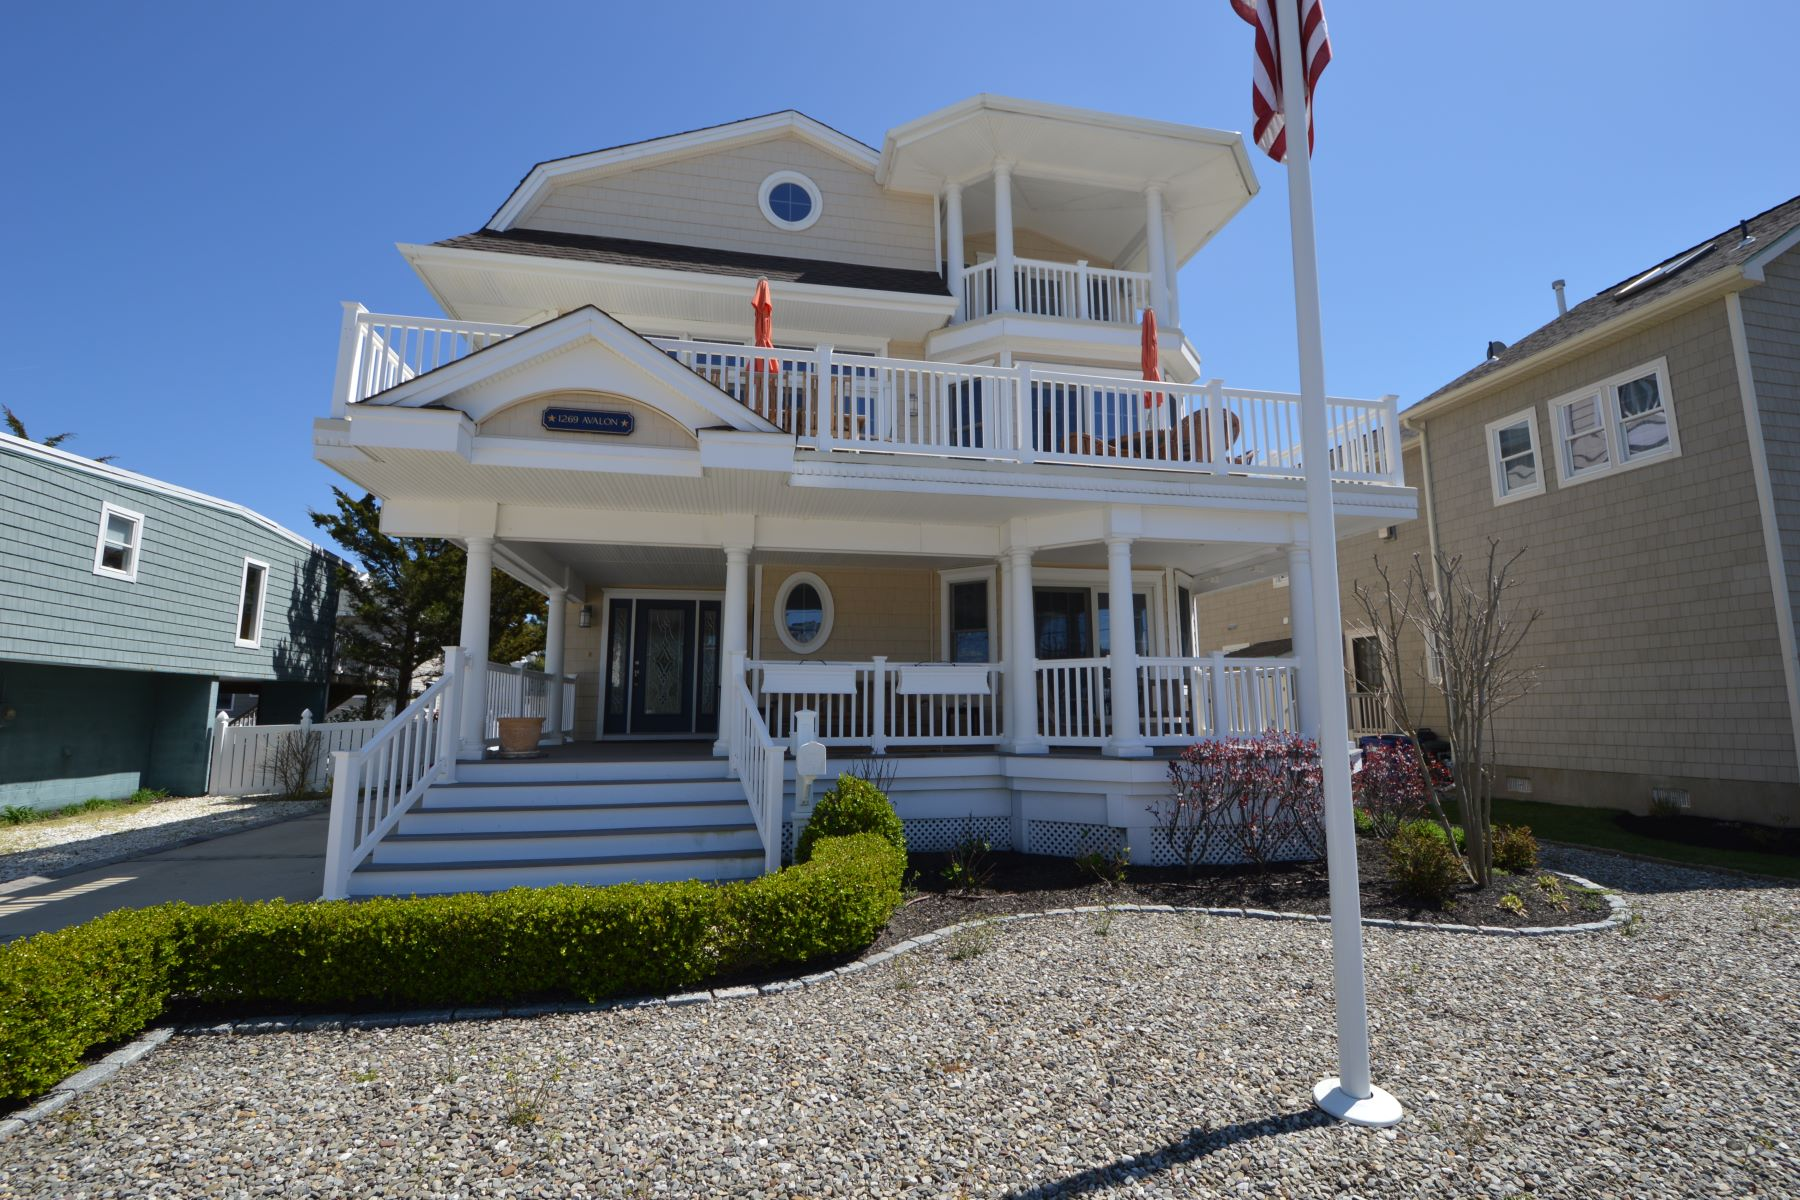 Single Family Home for Rent at Grand Beach Block Home 1269 Avalon Avenue, Avalon, New Jersey 08202 United States